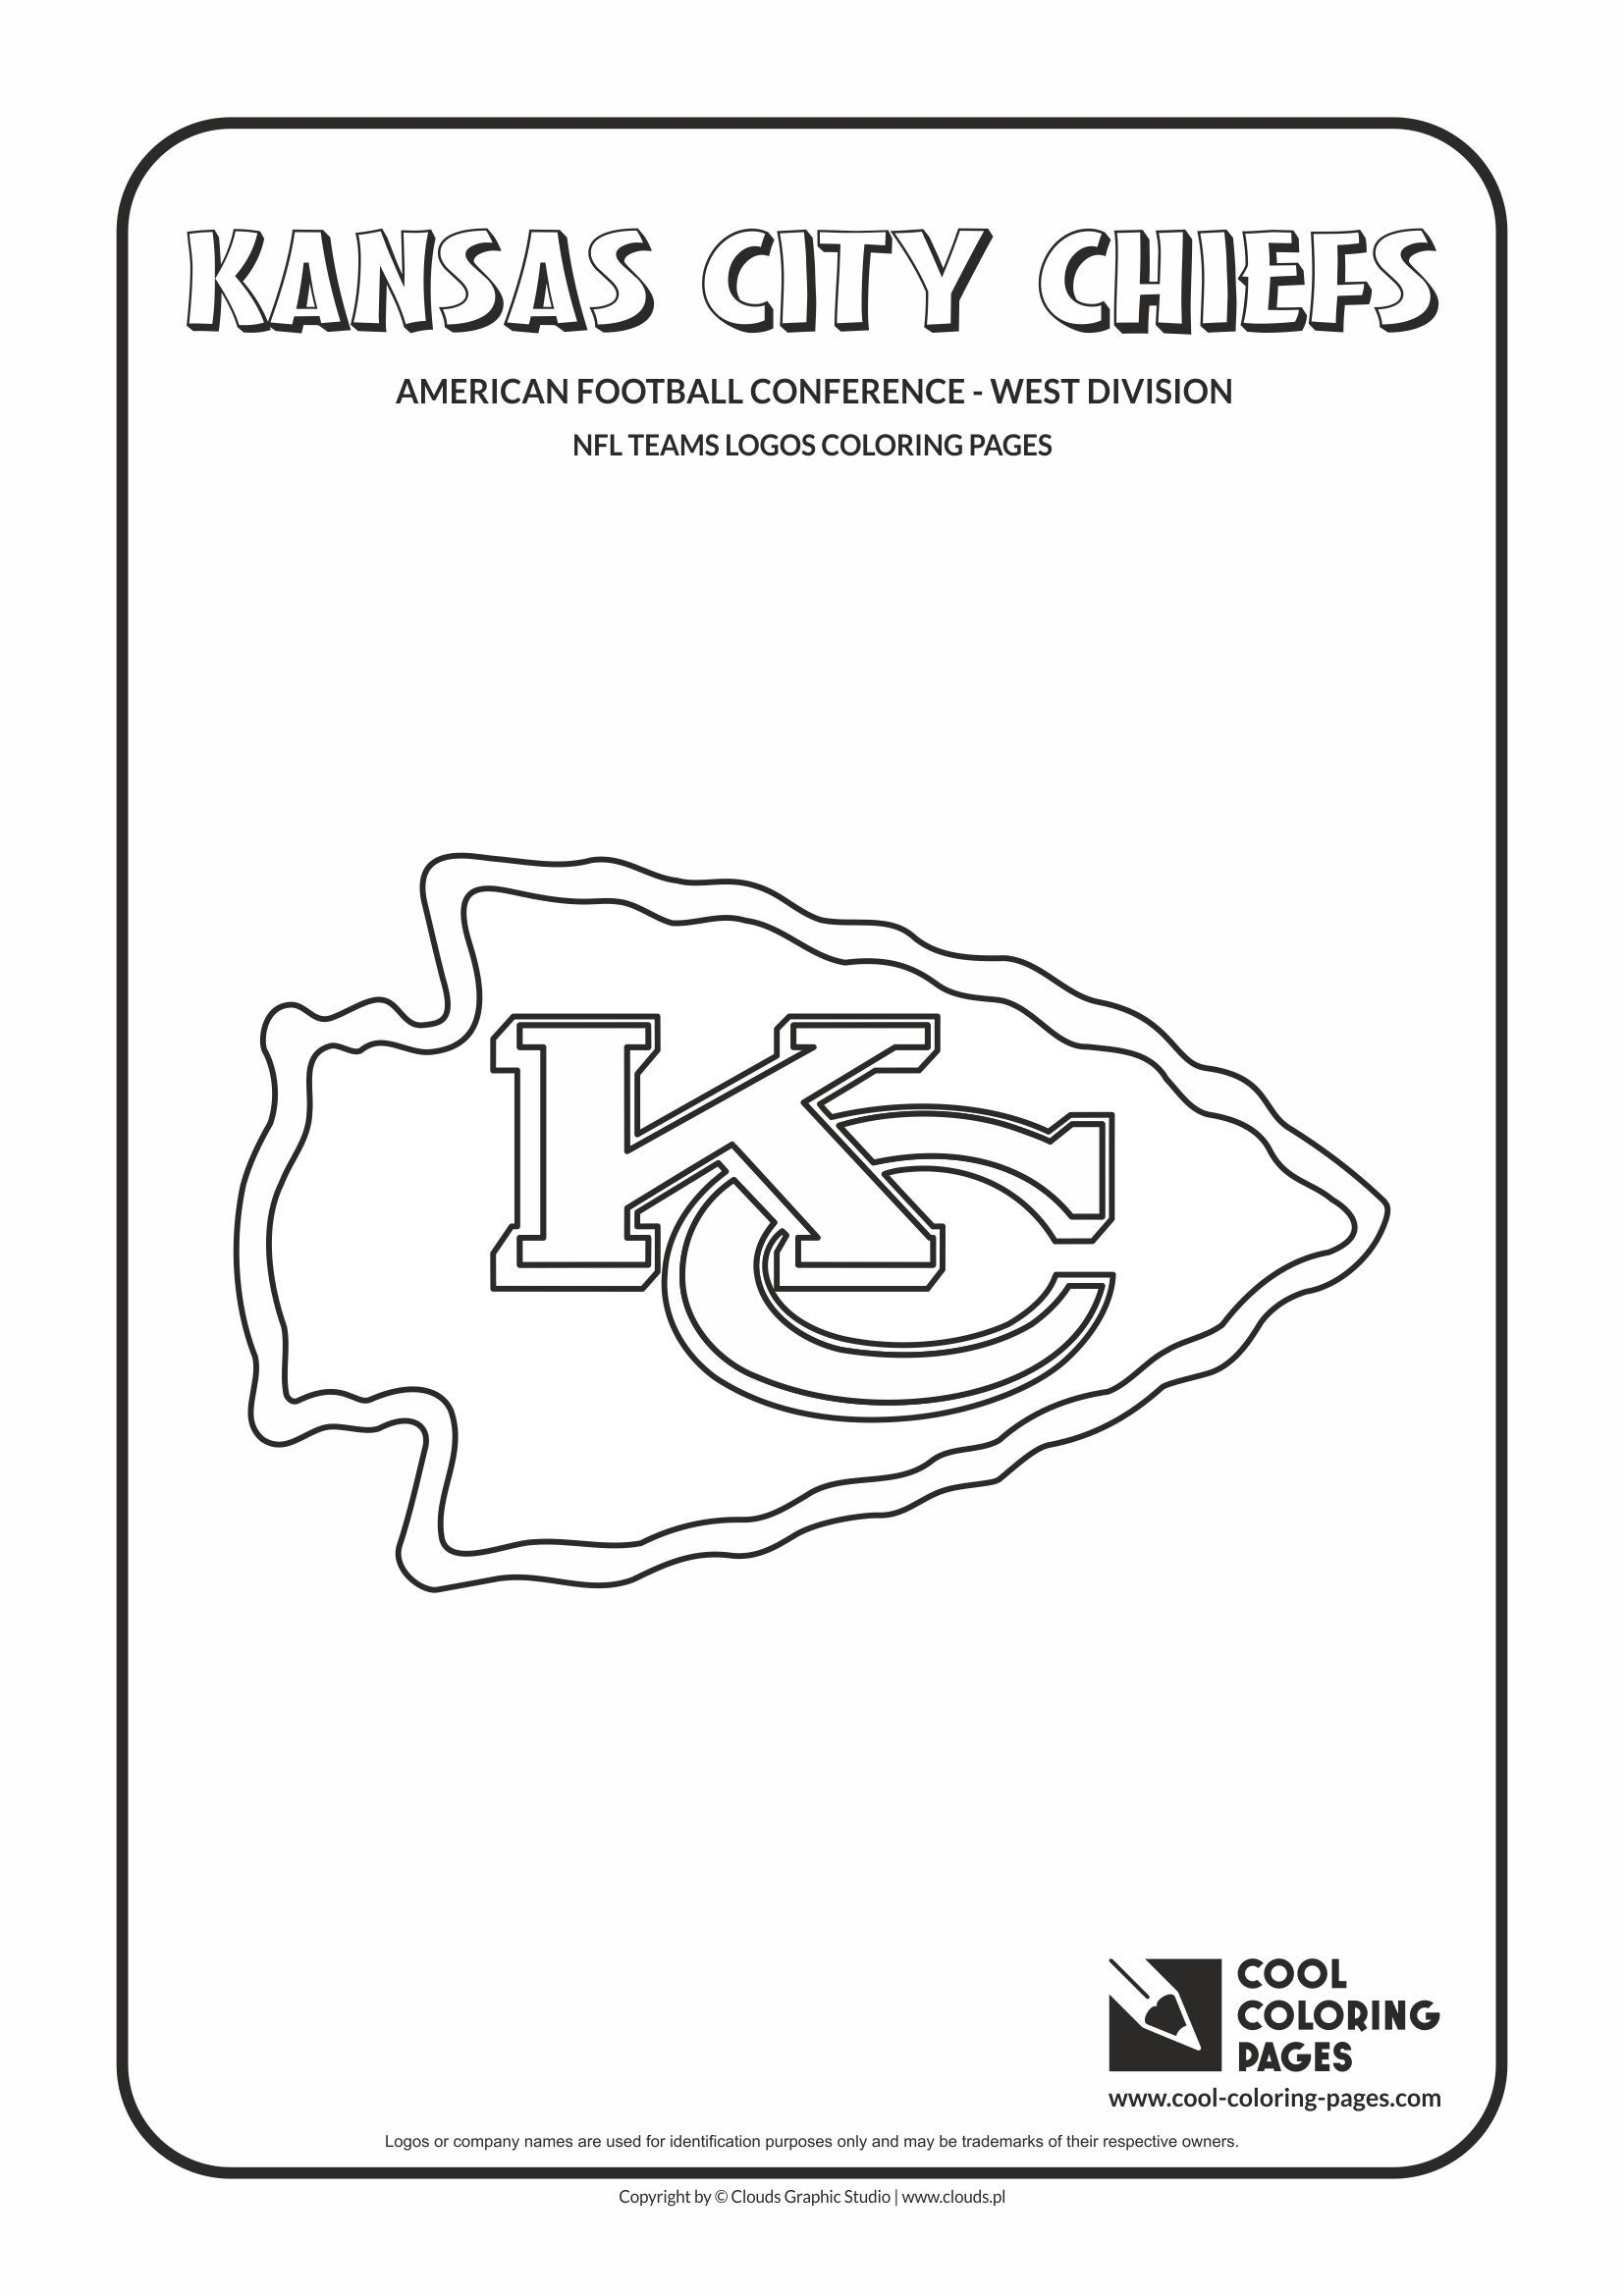 Kansas City Chiefs Nfl American Football Teams Logos Coloring